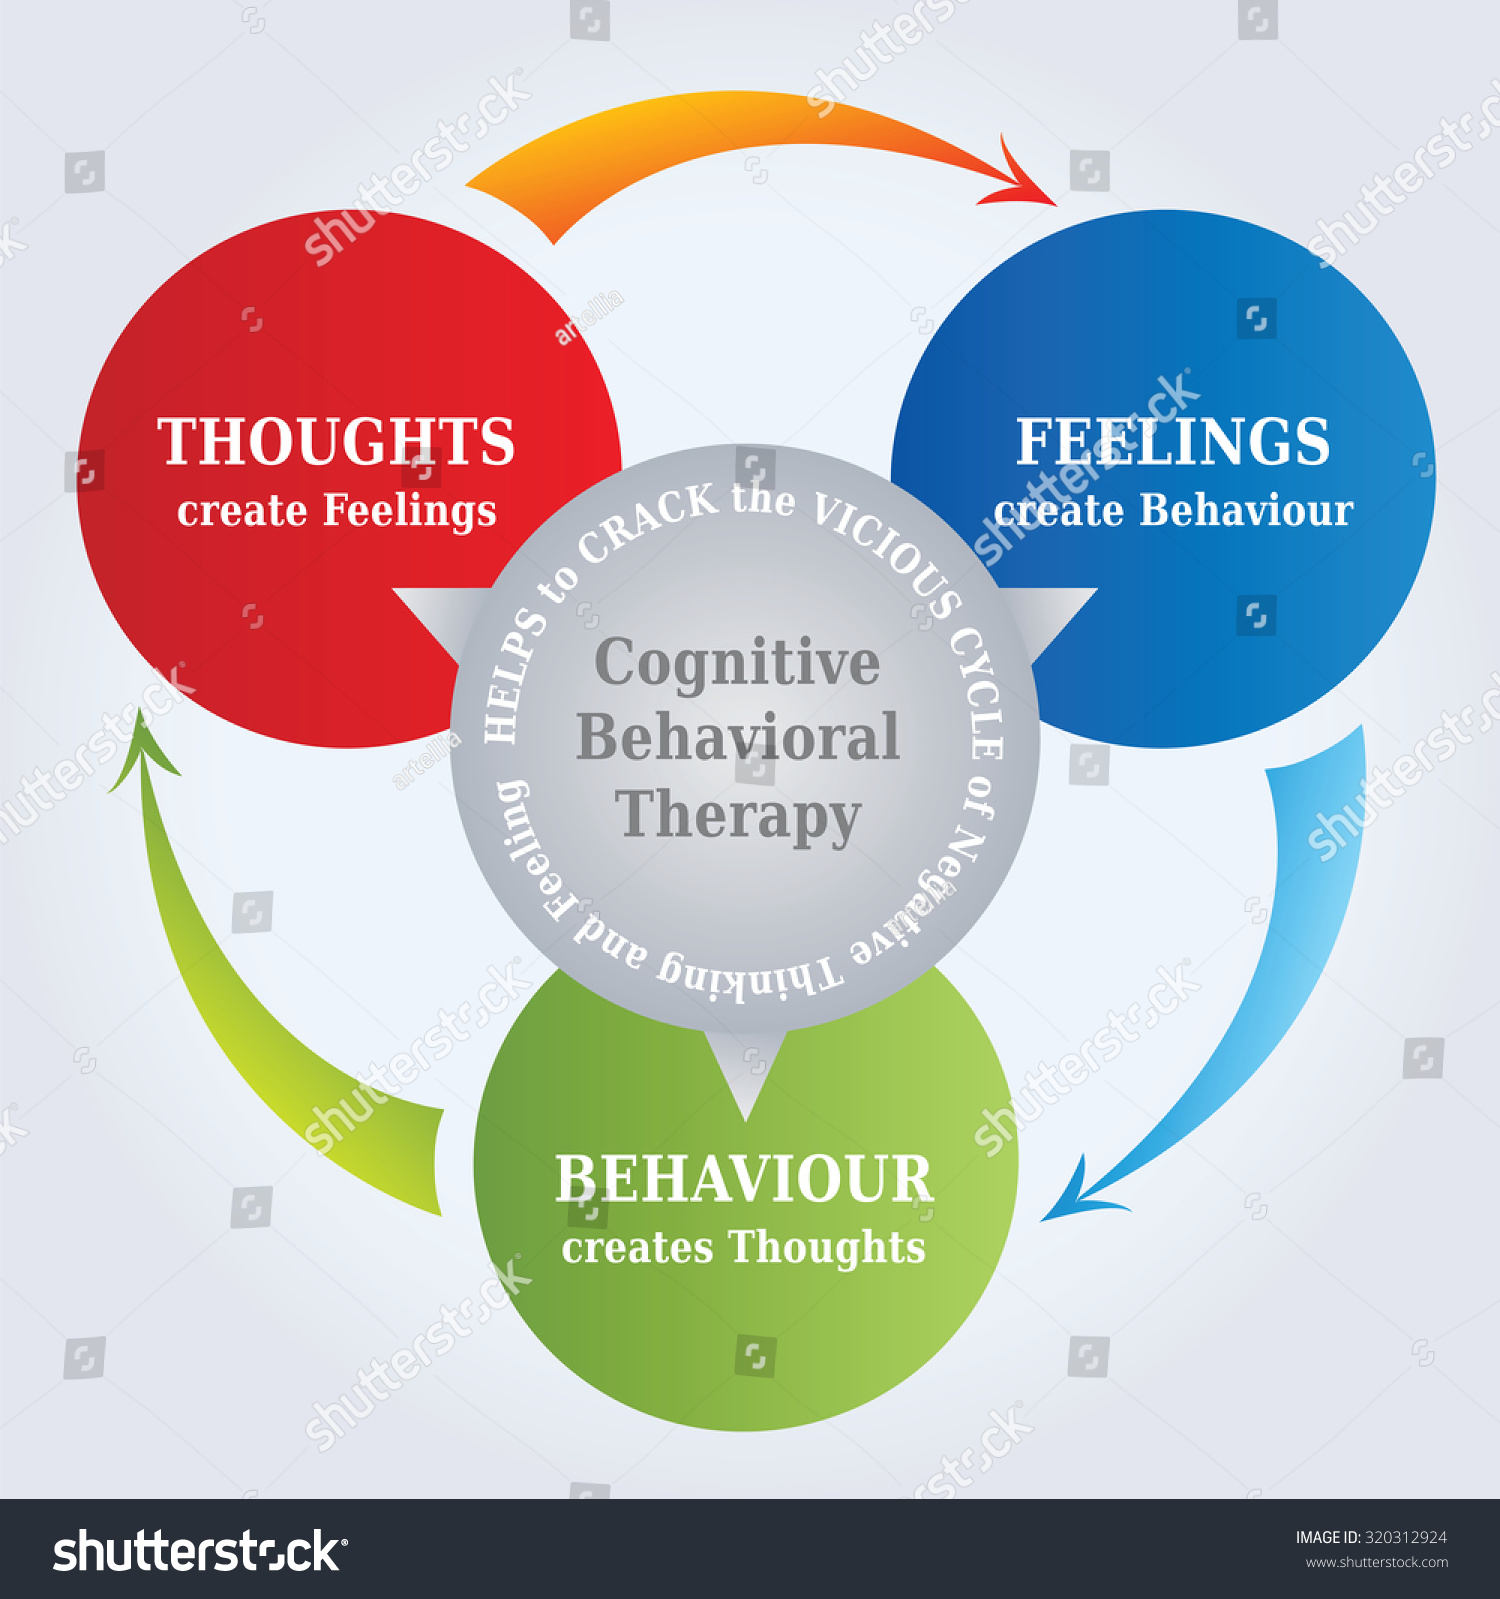 Cbt Cognitive Behavioral Therapy Cycle Diagram With The